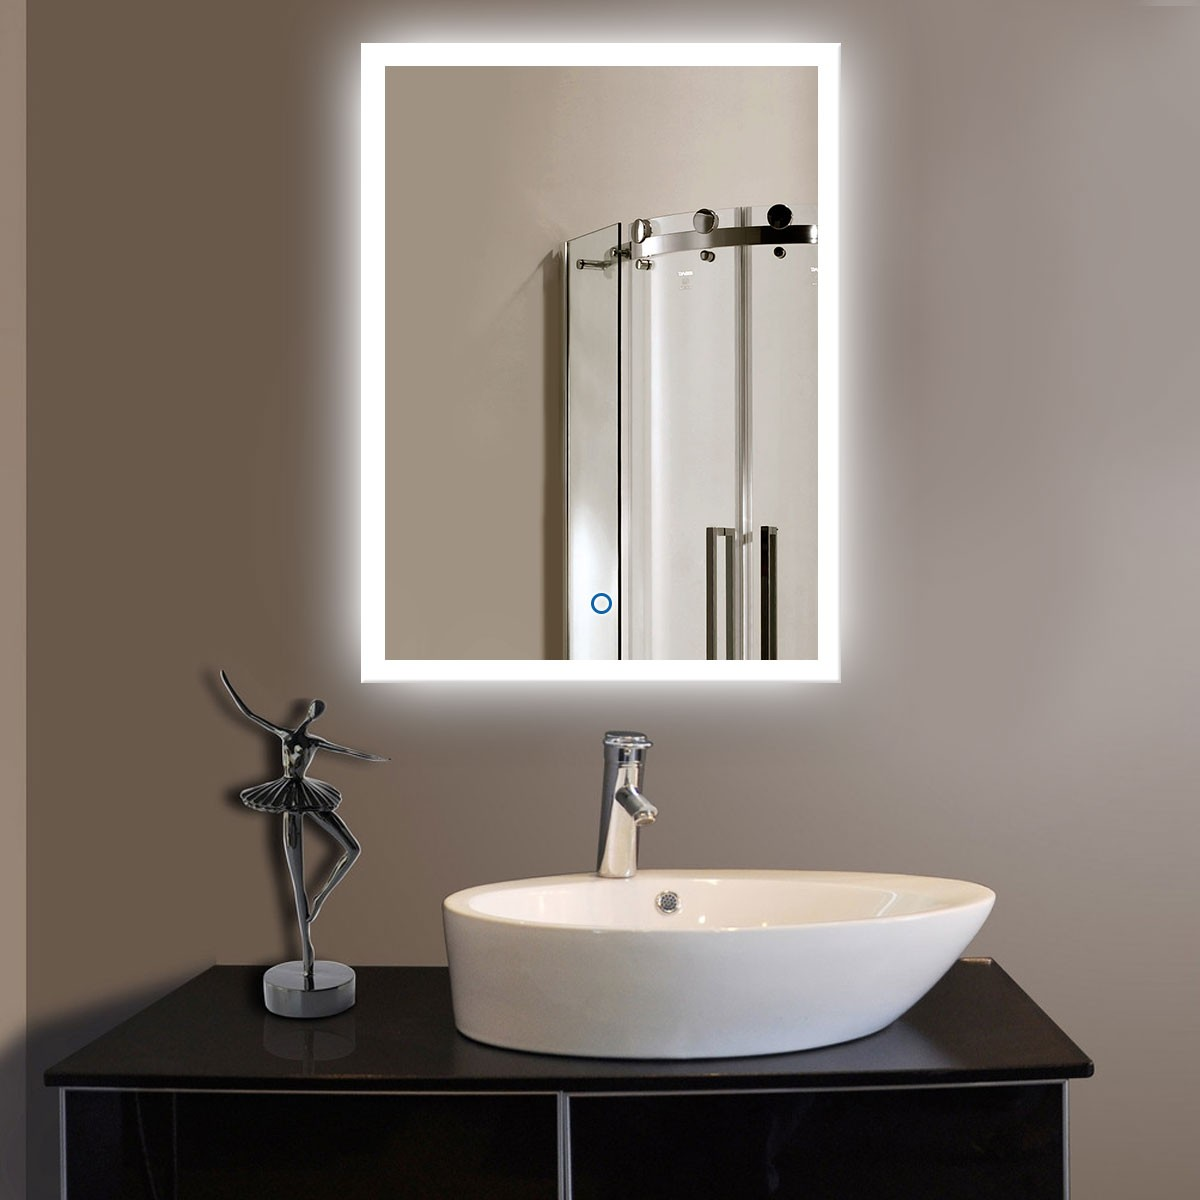 24 x 32 In Vertical LED Bathroom Silvered Mirror with Touch Button (DK-OD-N031)